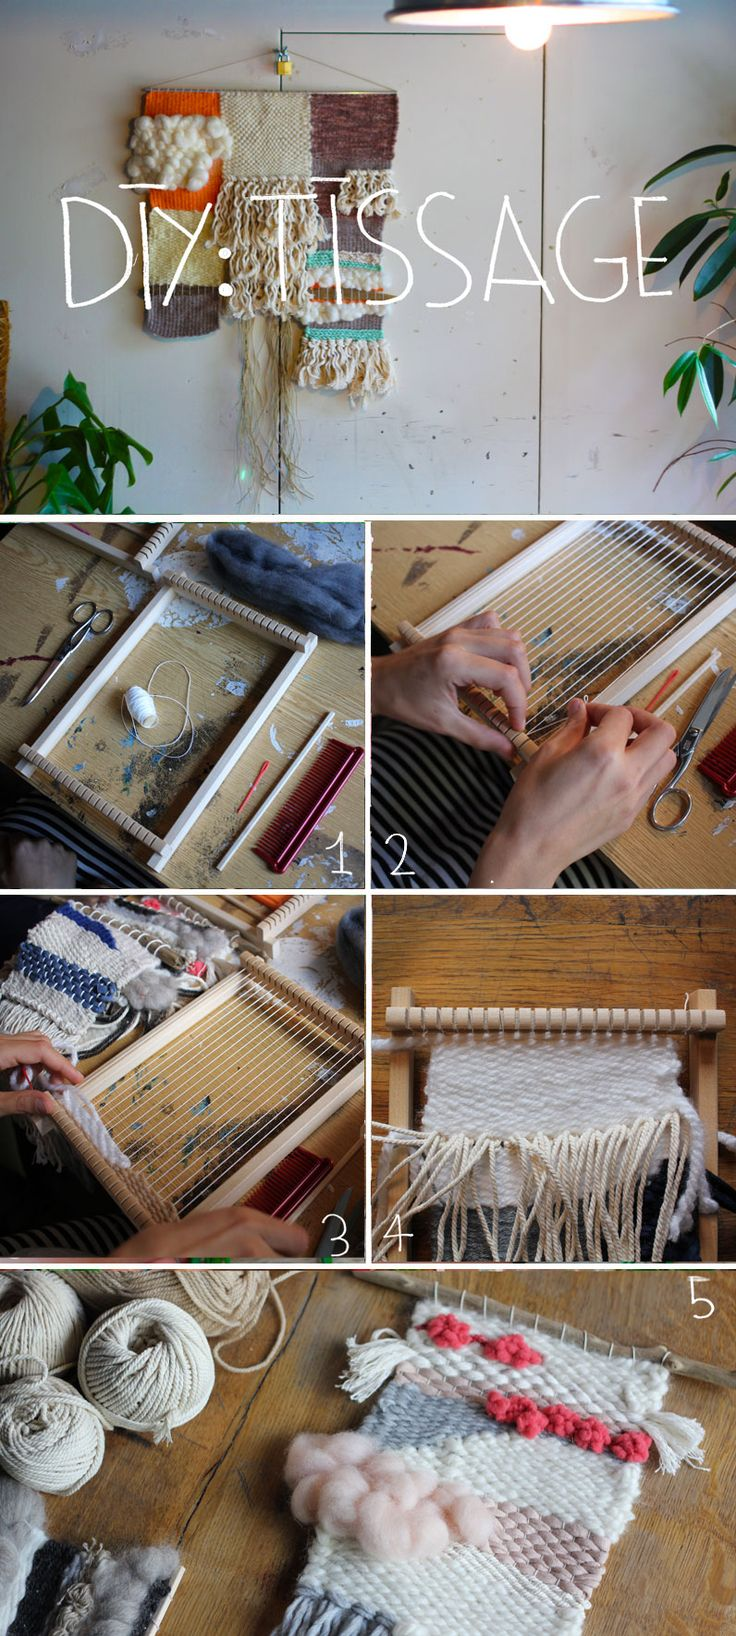 DIY: Woven Wall Hanging Tutorial